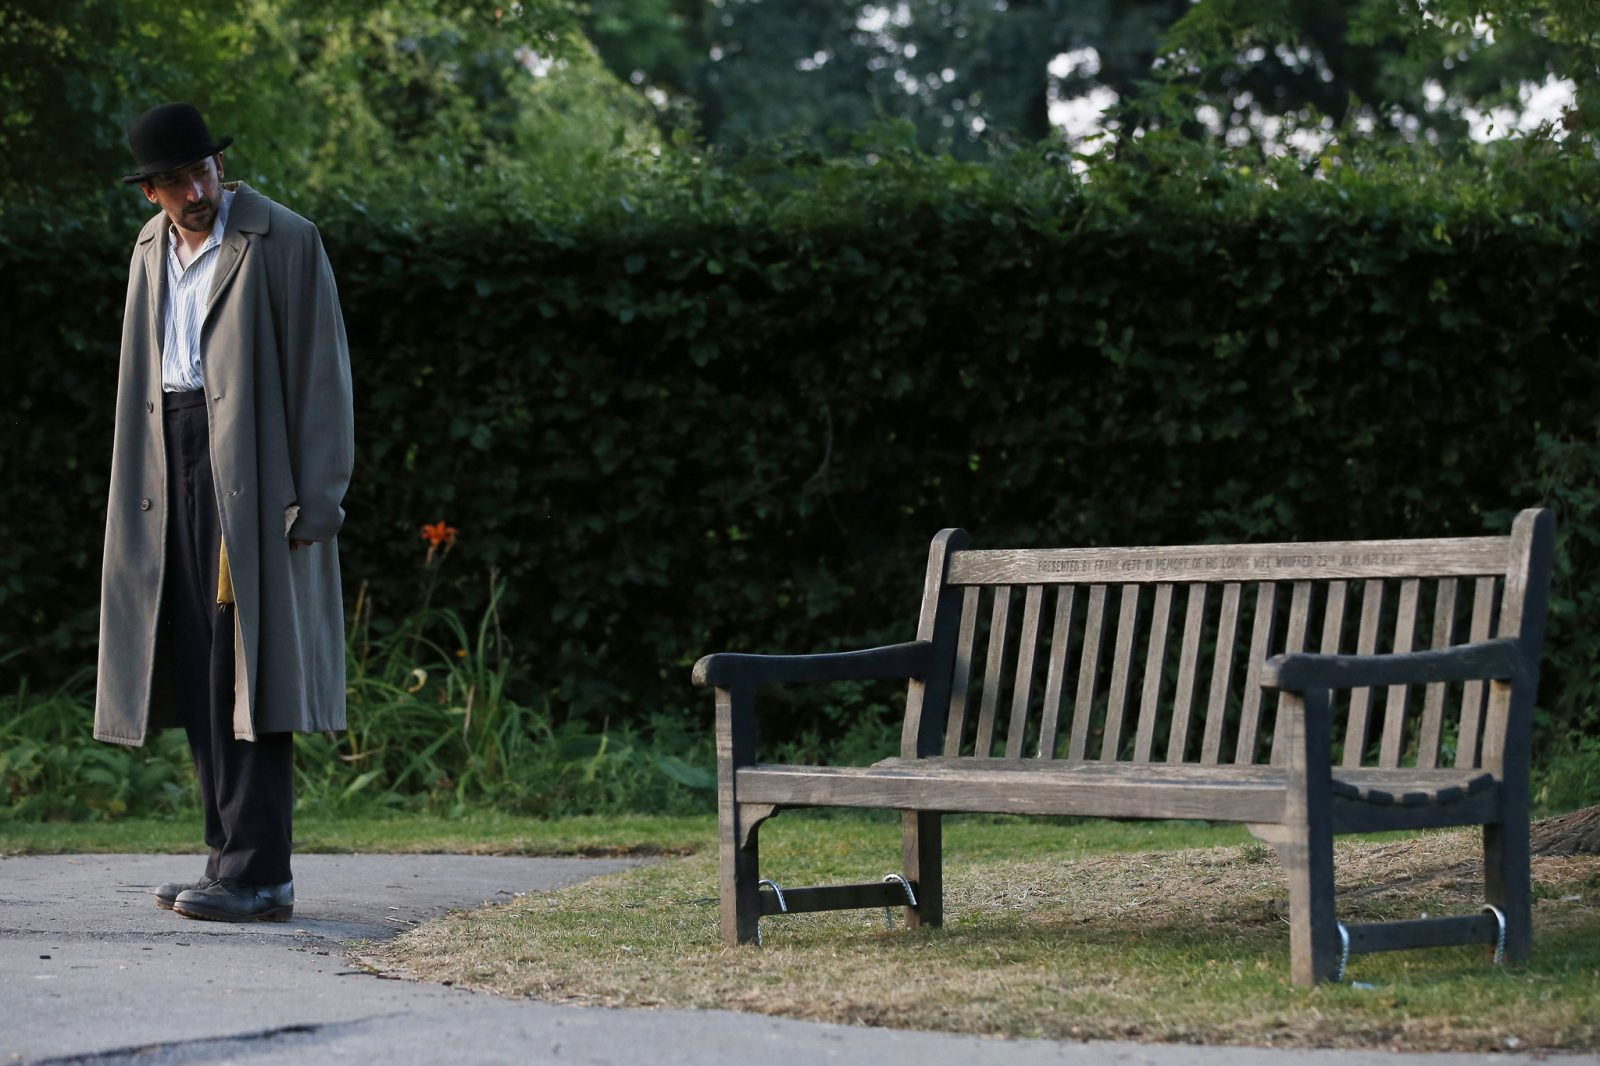 actor chris hannon in tan overcoat and black hat, standing up and looking backwards towards empty park bench distanced slightly behind him